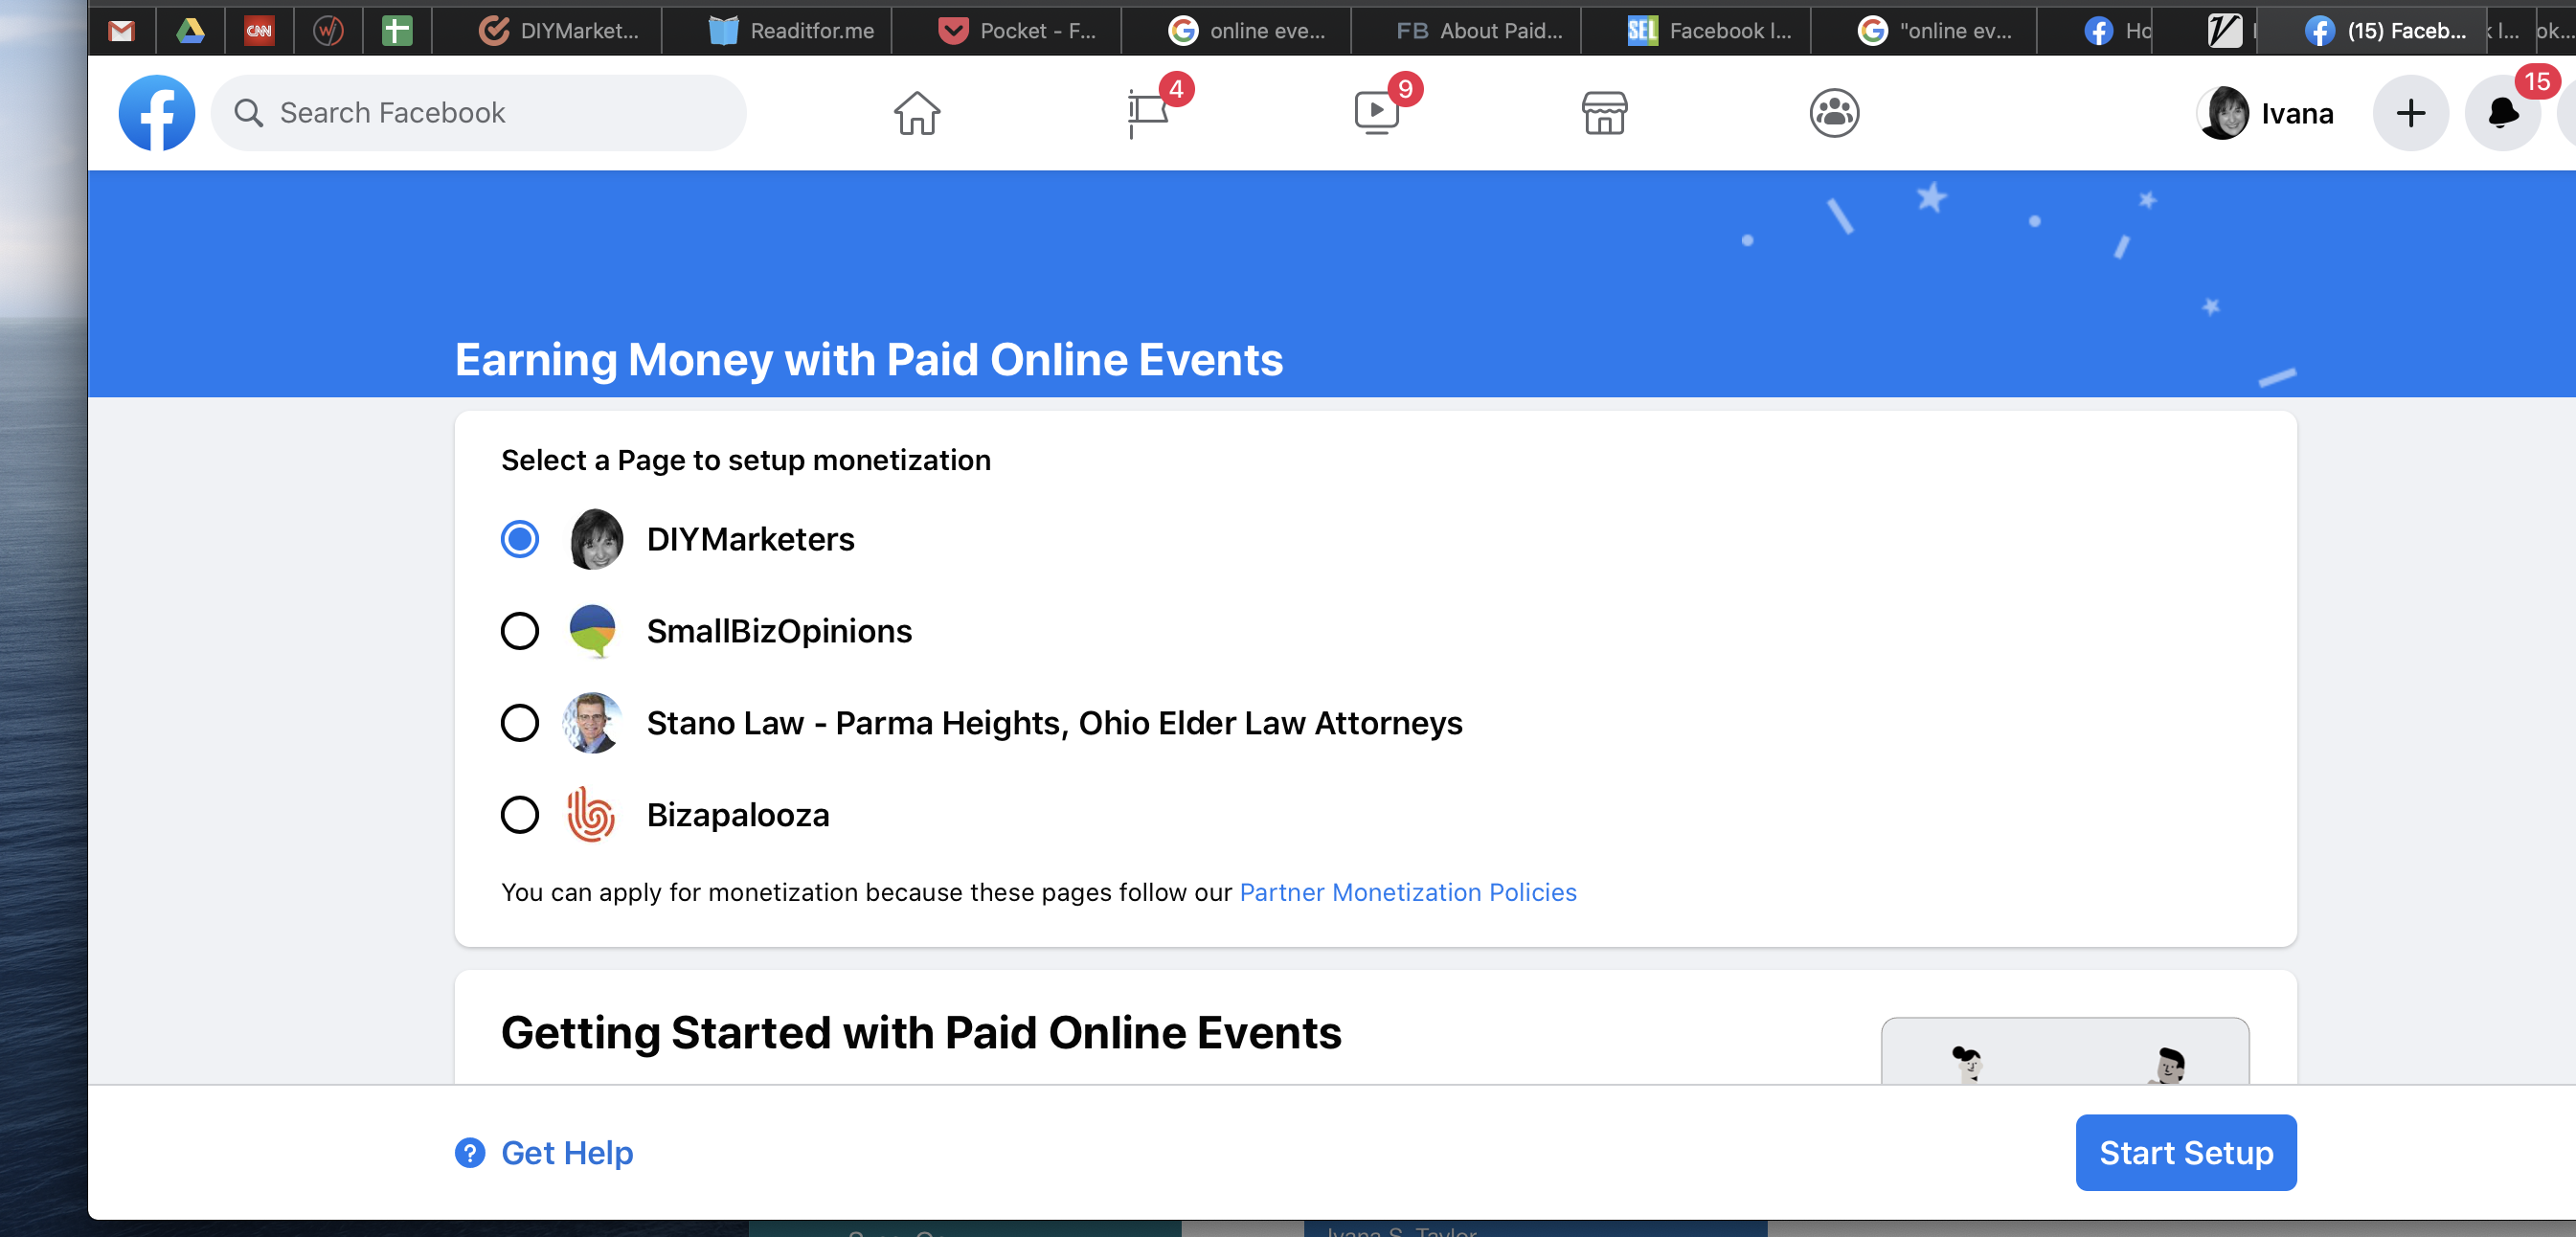 setting up Facebook online events - select business page